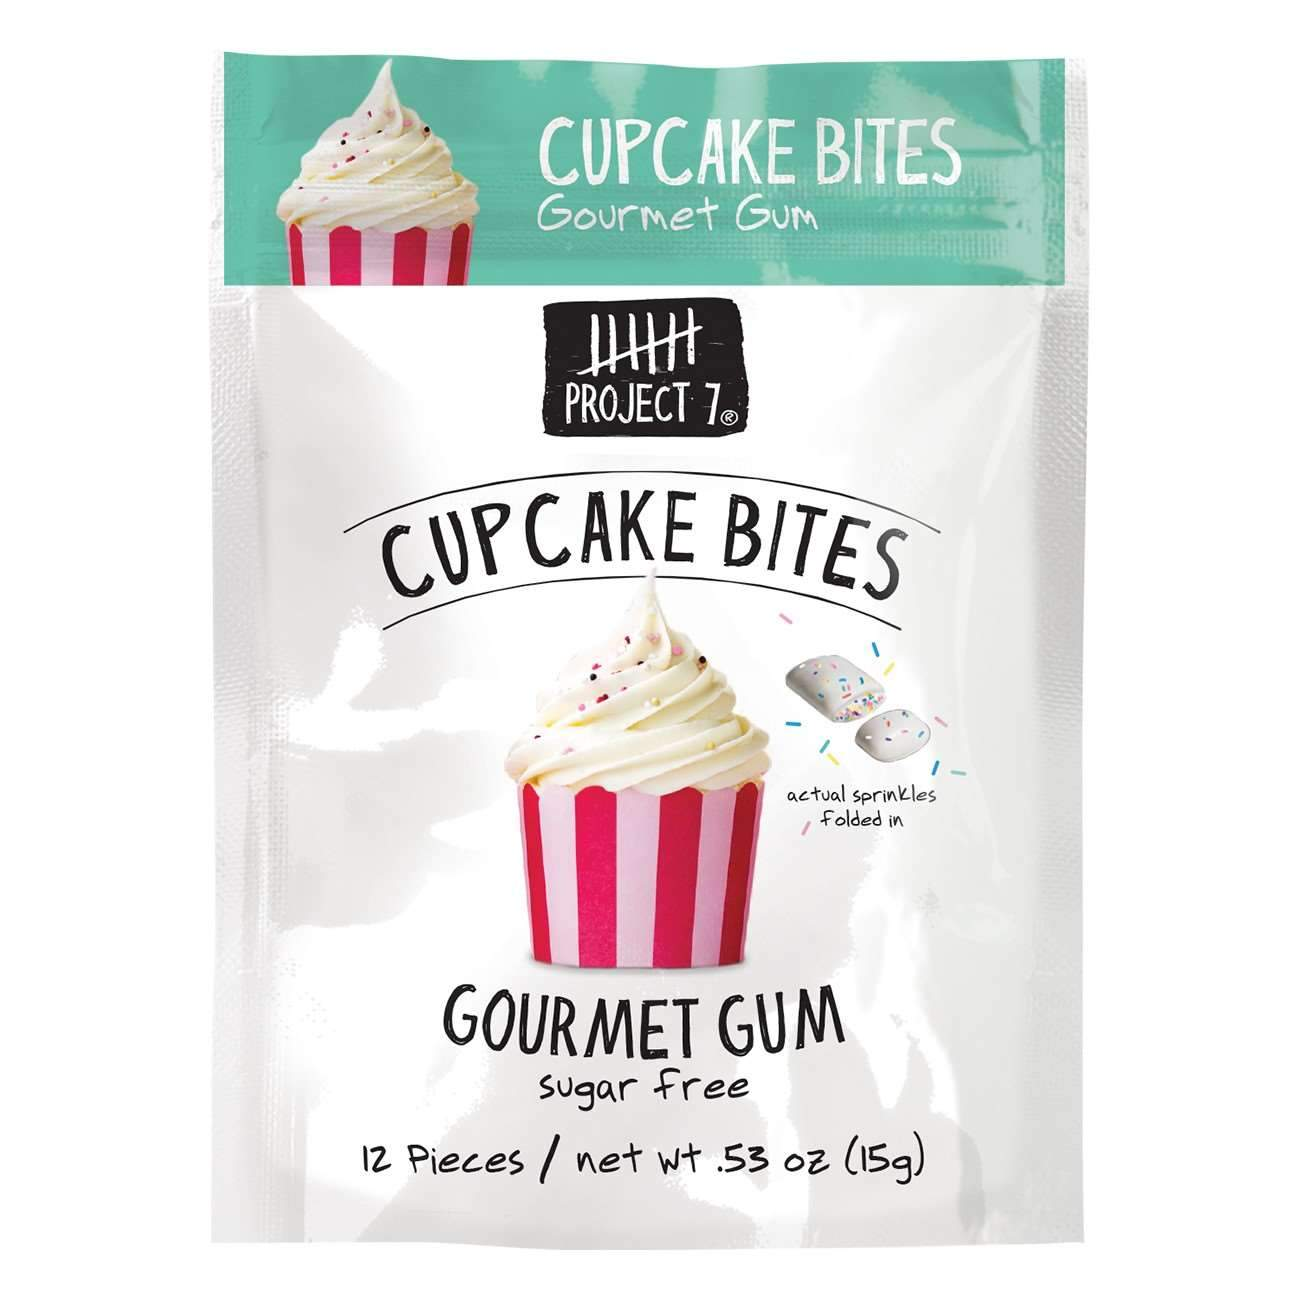 Project 7 Gourmet Gum Sugar Free Snackathon Foods Cupcake Bites 0.53 Ounce